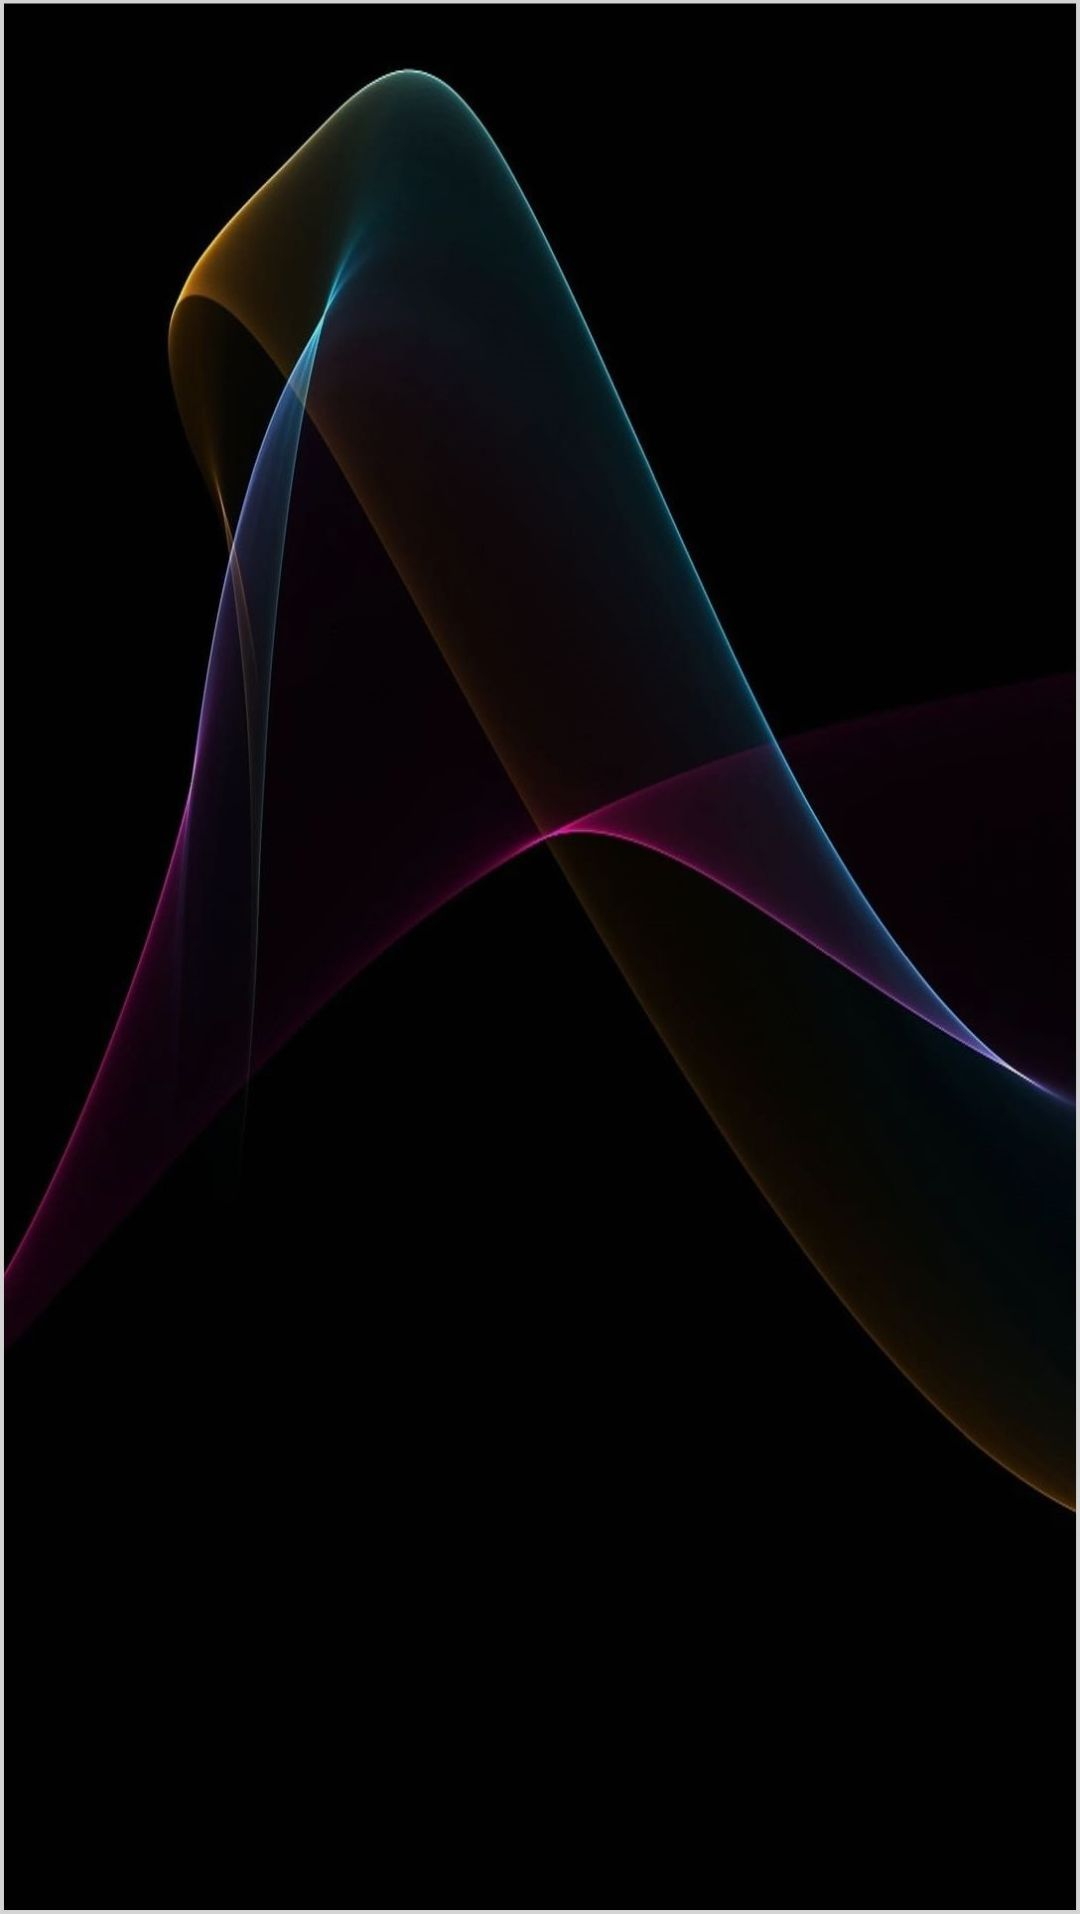 Abstract free wallpaper for Android